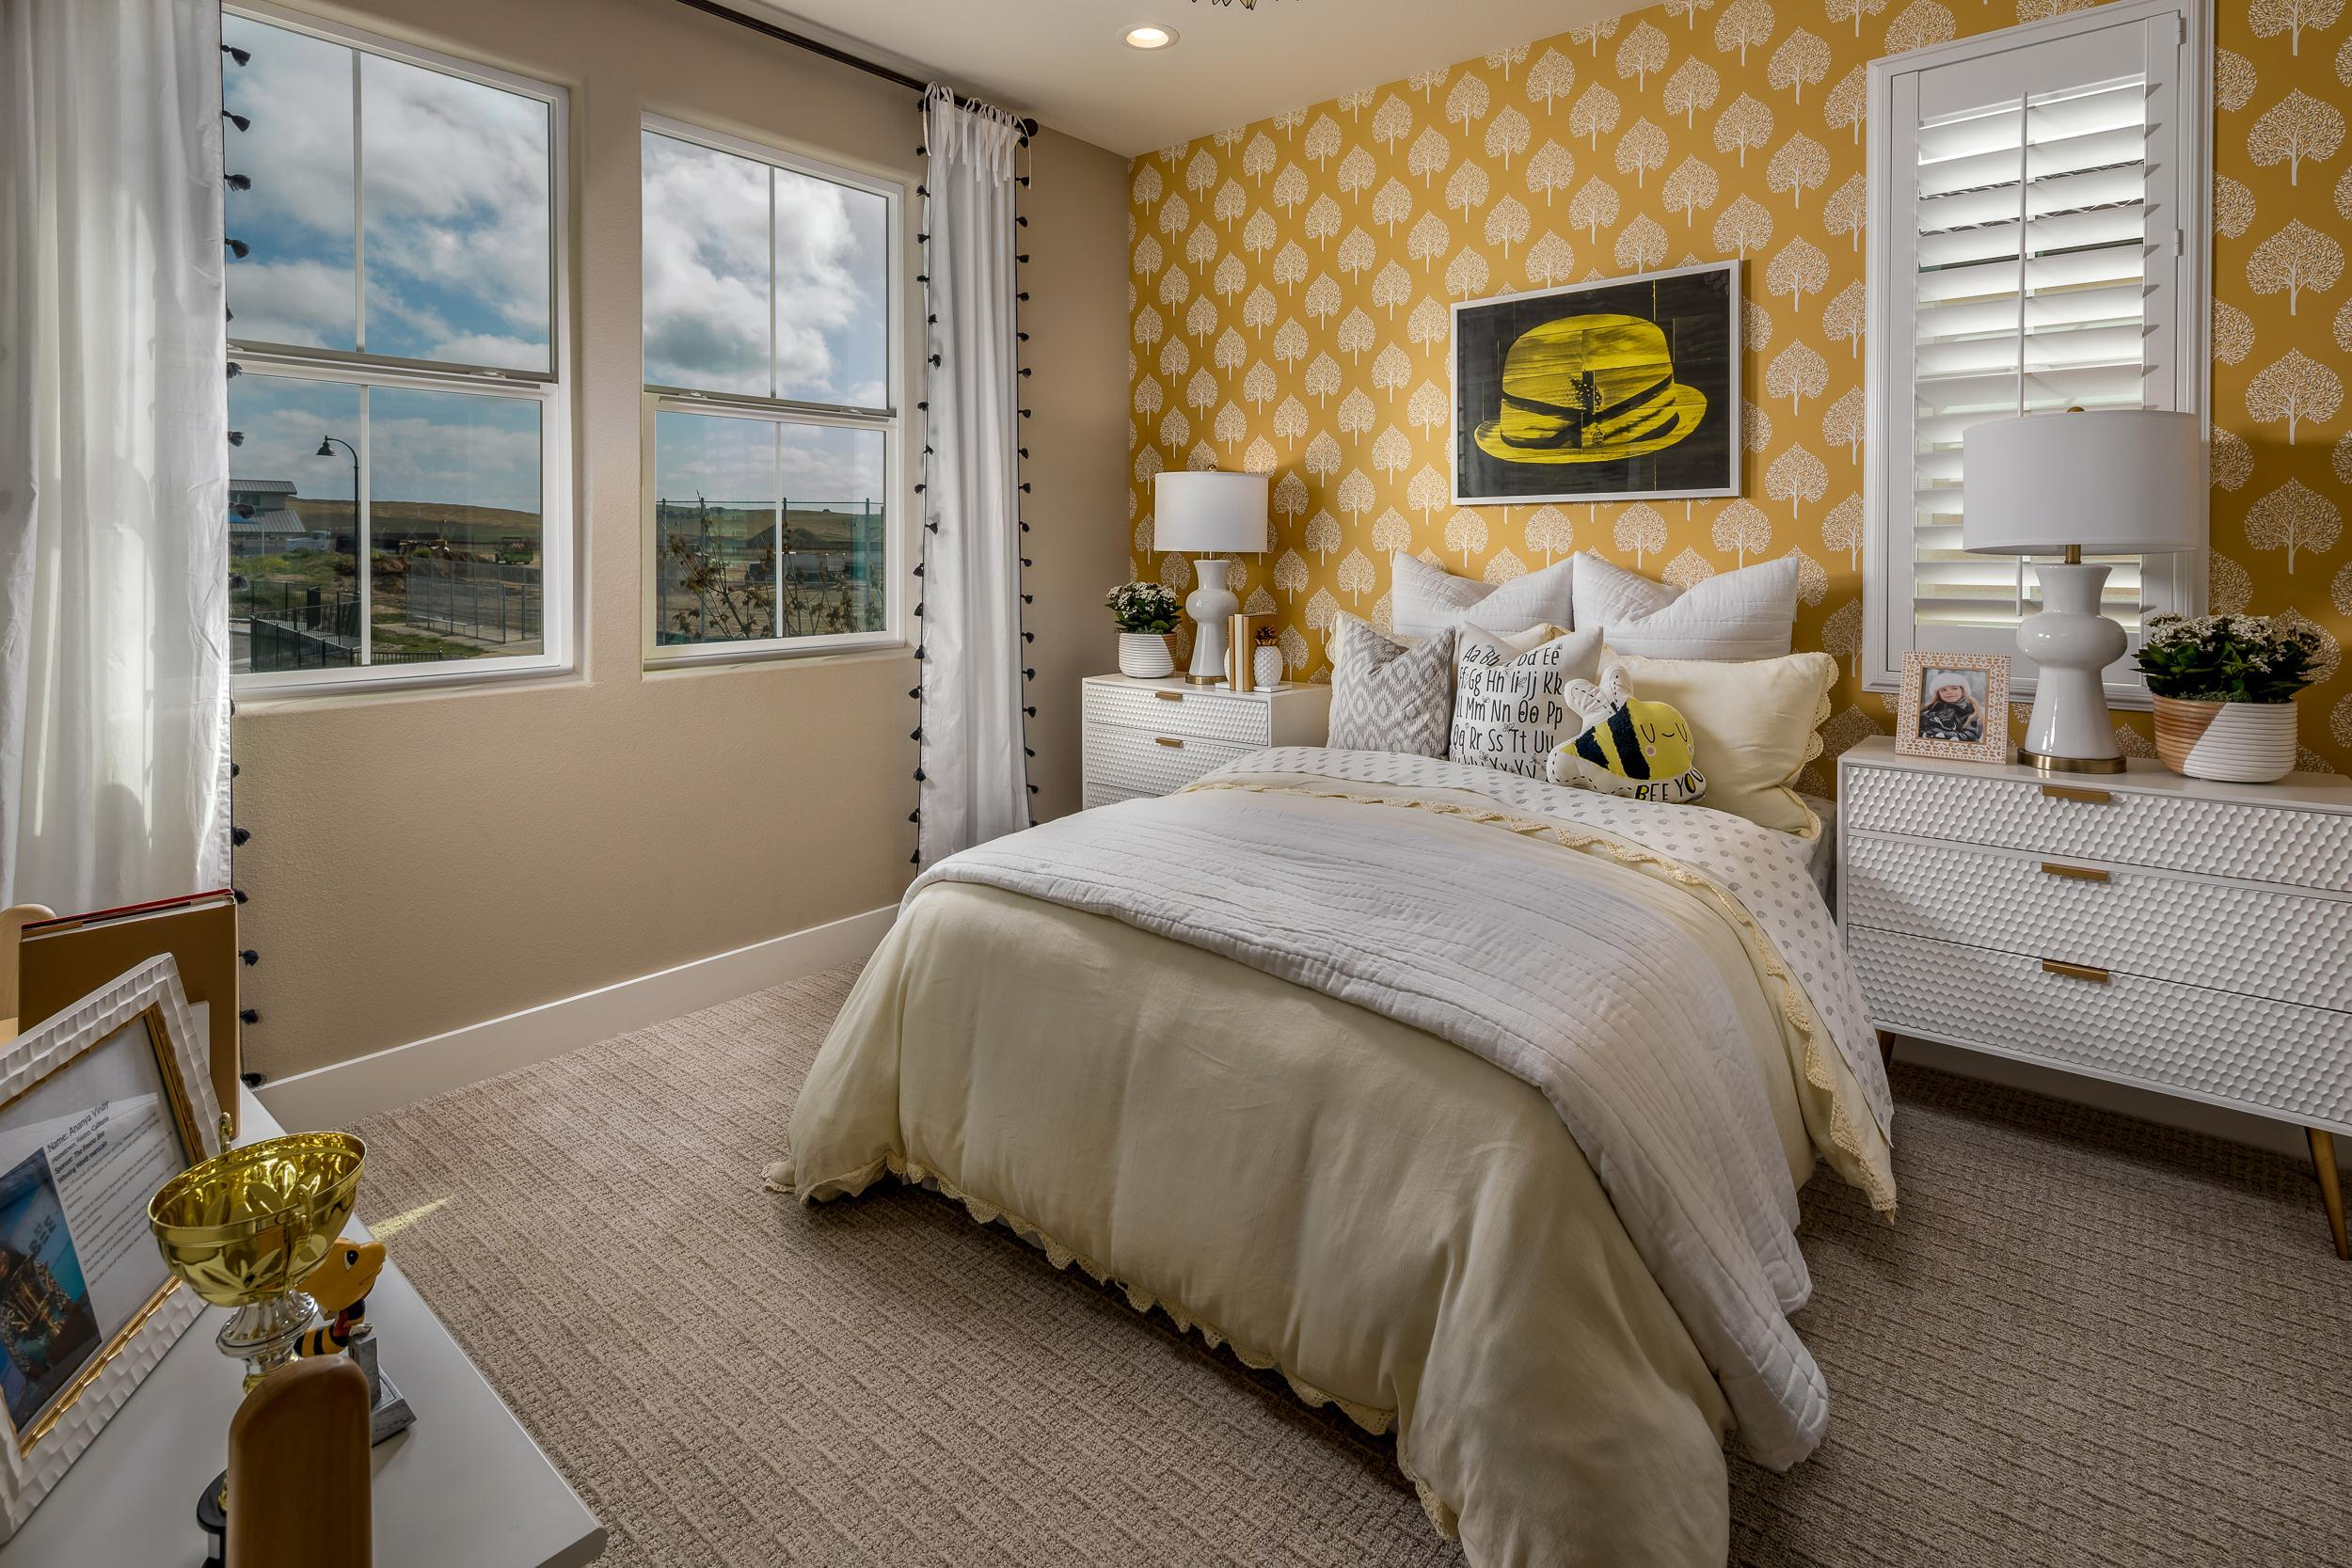 Bedroom featured in the Laina By McCaffrey Homes in Fresno, CA